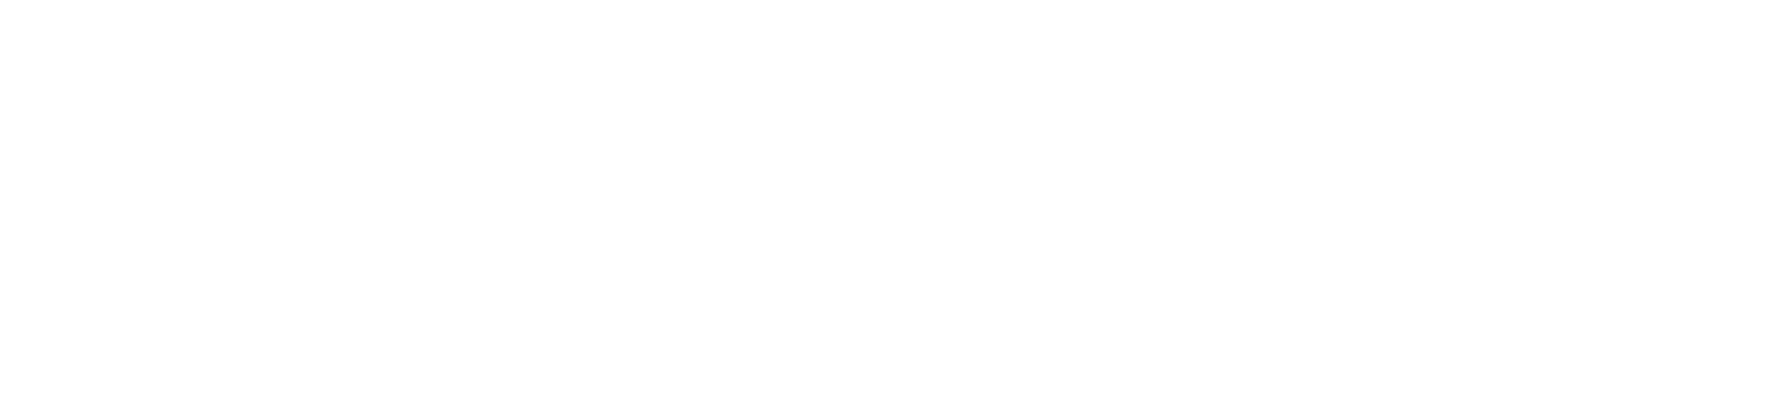 Ivalo River Camping logo